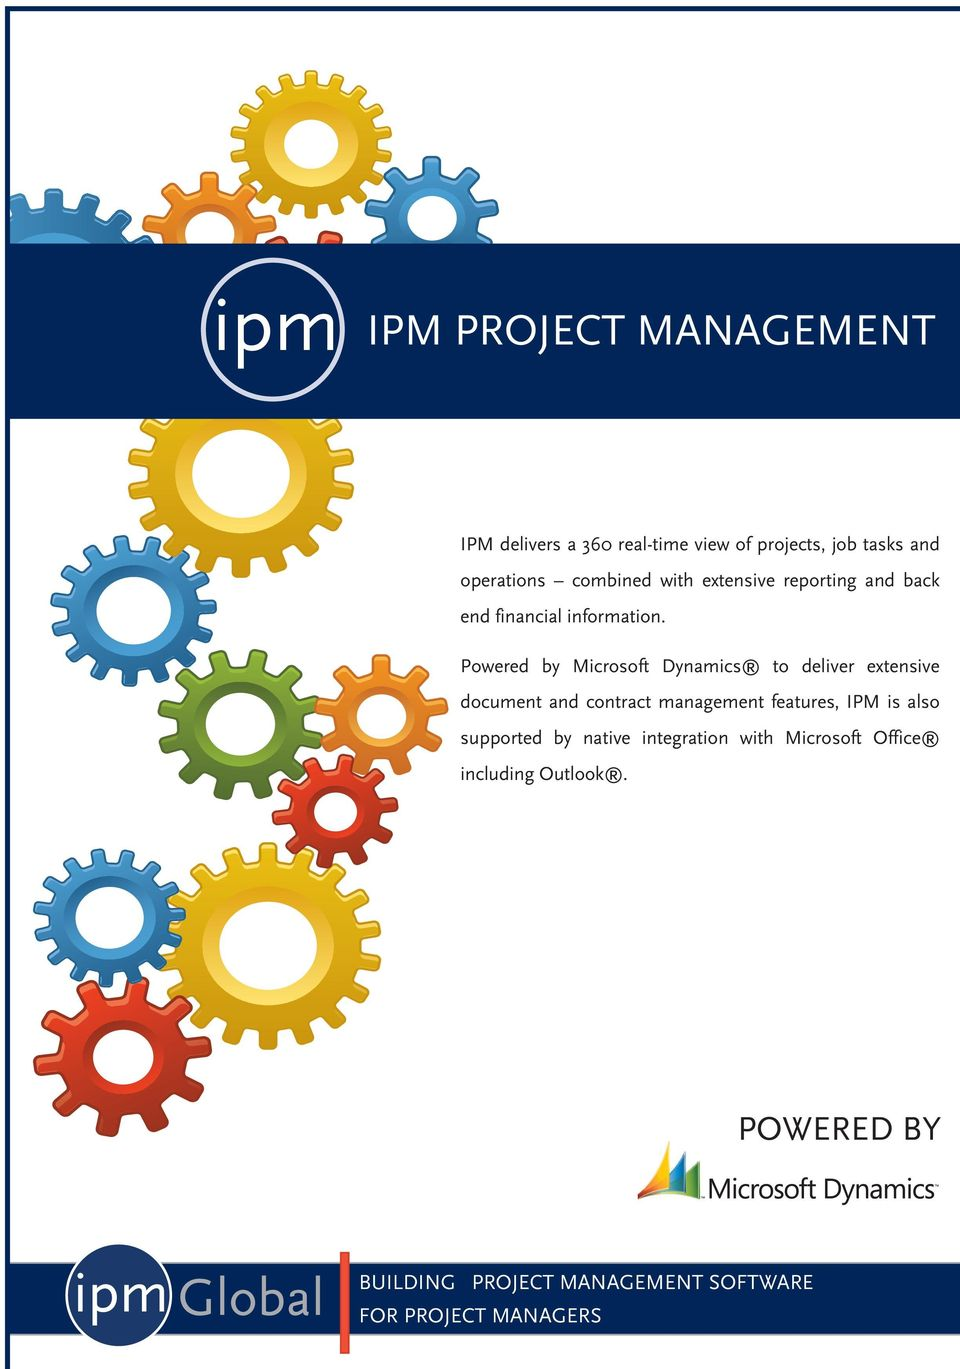 Powered by Microsoft Dynamics to deliver extensive document and contract management features, IPM is